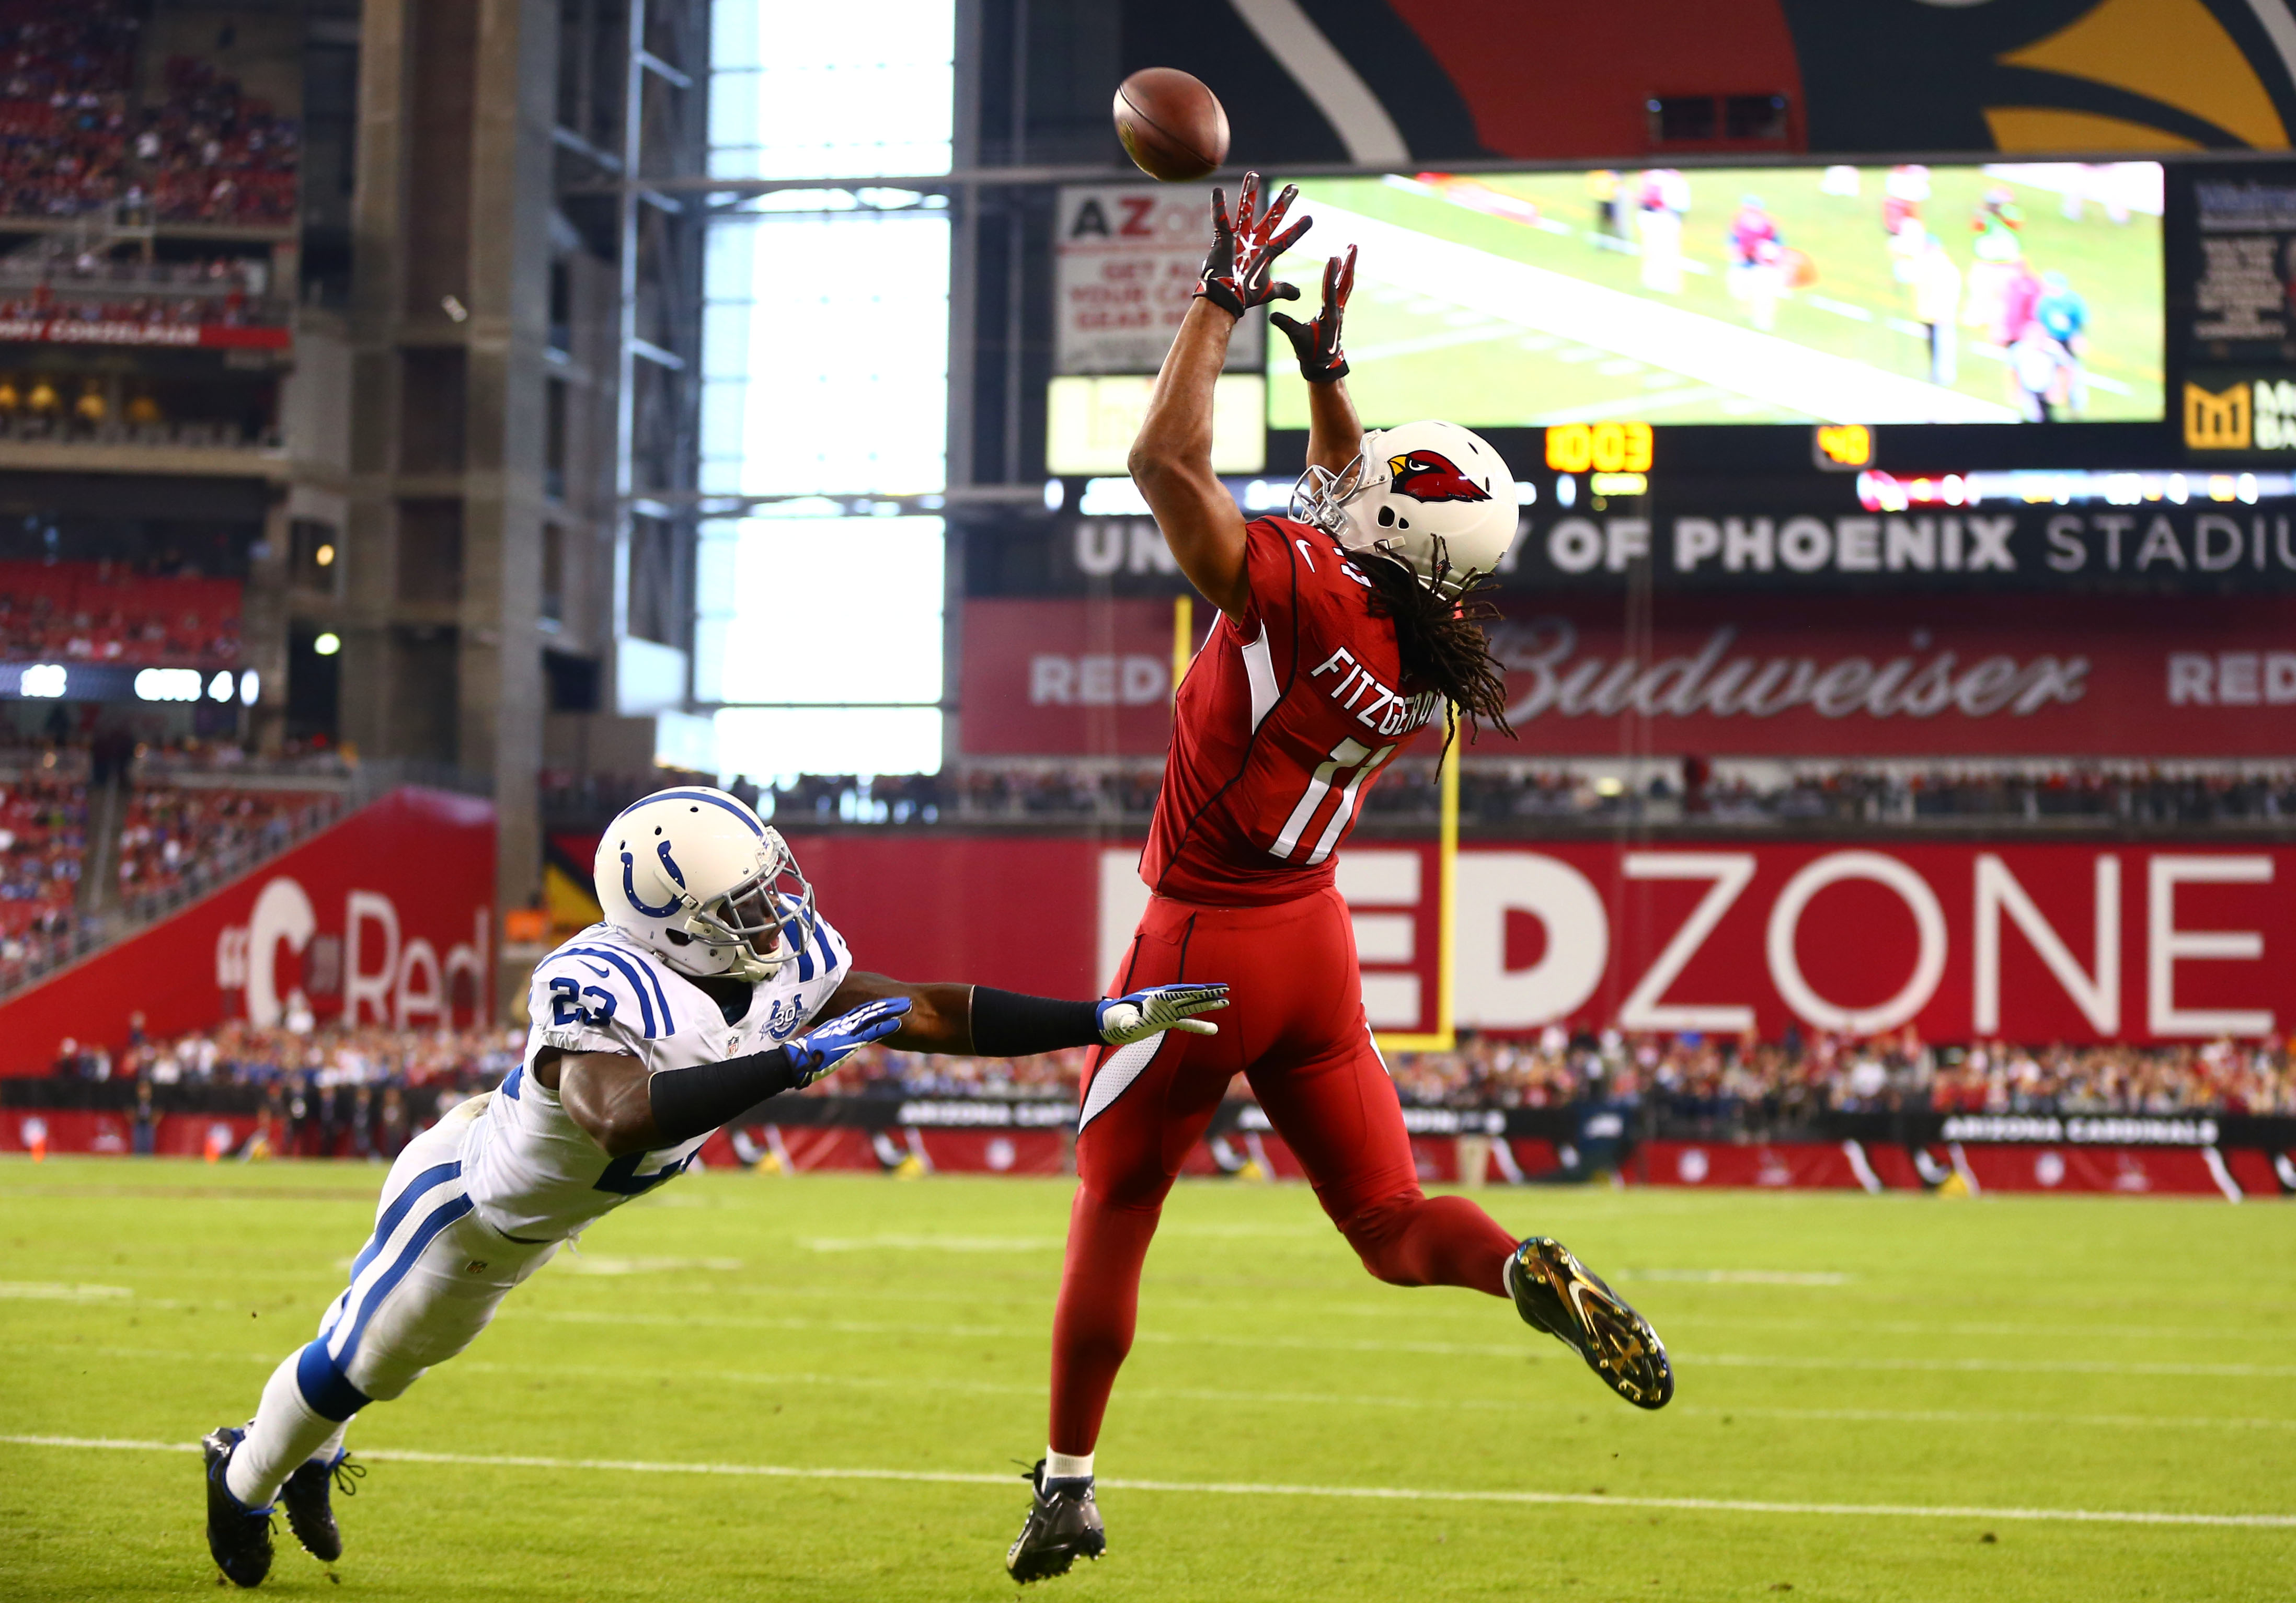 7575676-nfl-indianapolis-colts-at-arizona-cardinals